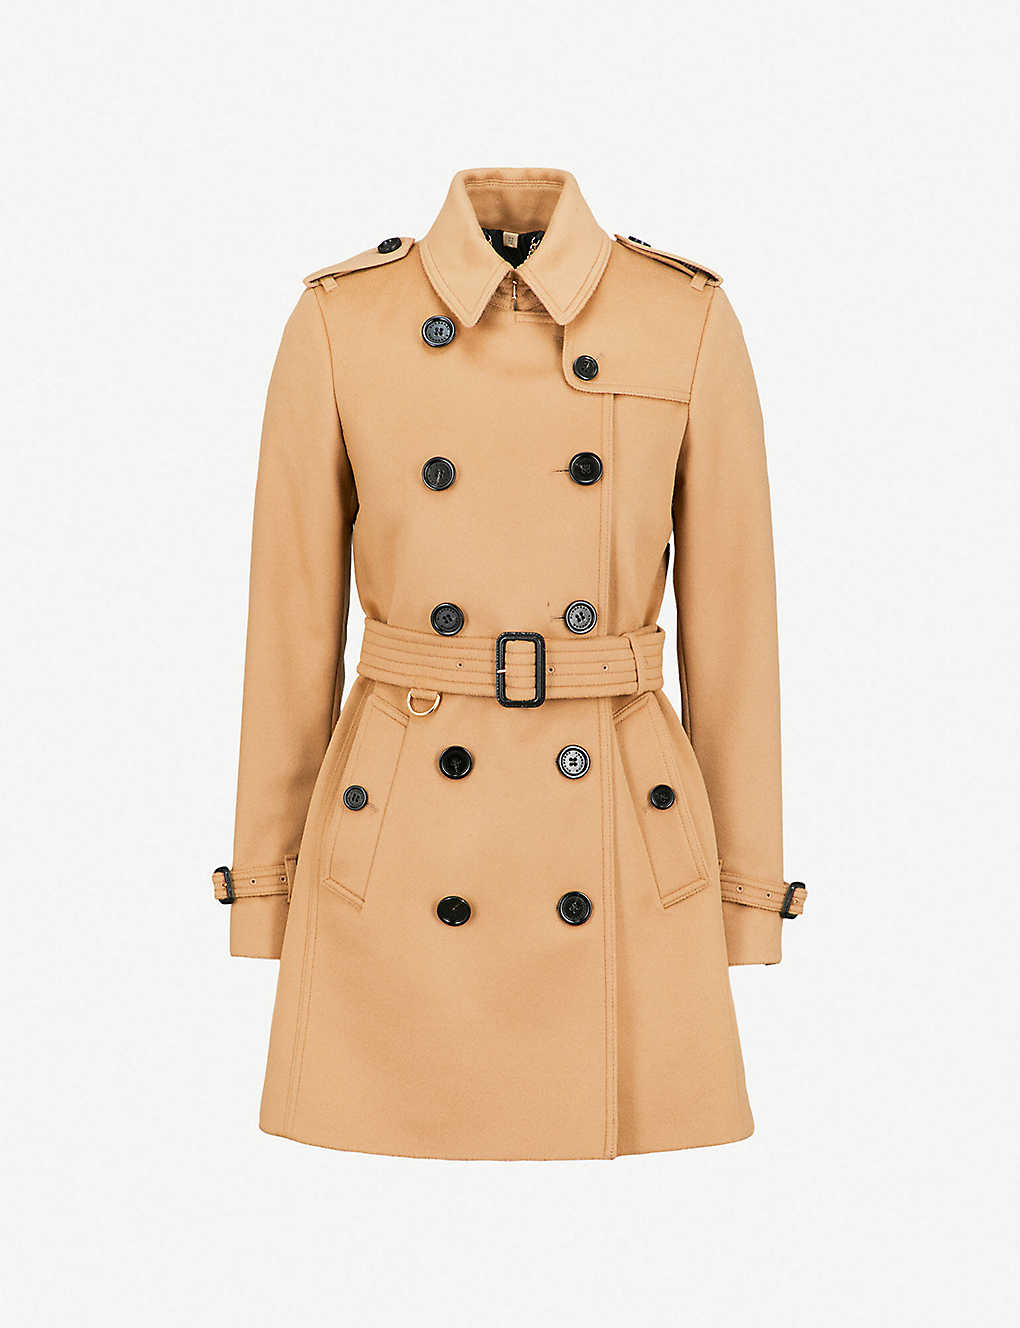 Burberry Coats The Kensington Heritage wool and cashmere-blend coat